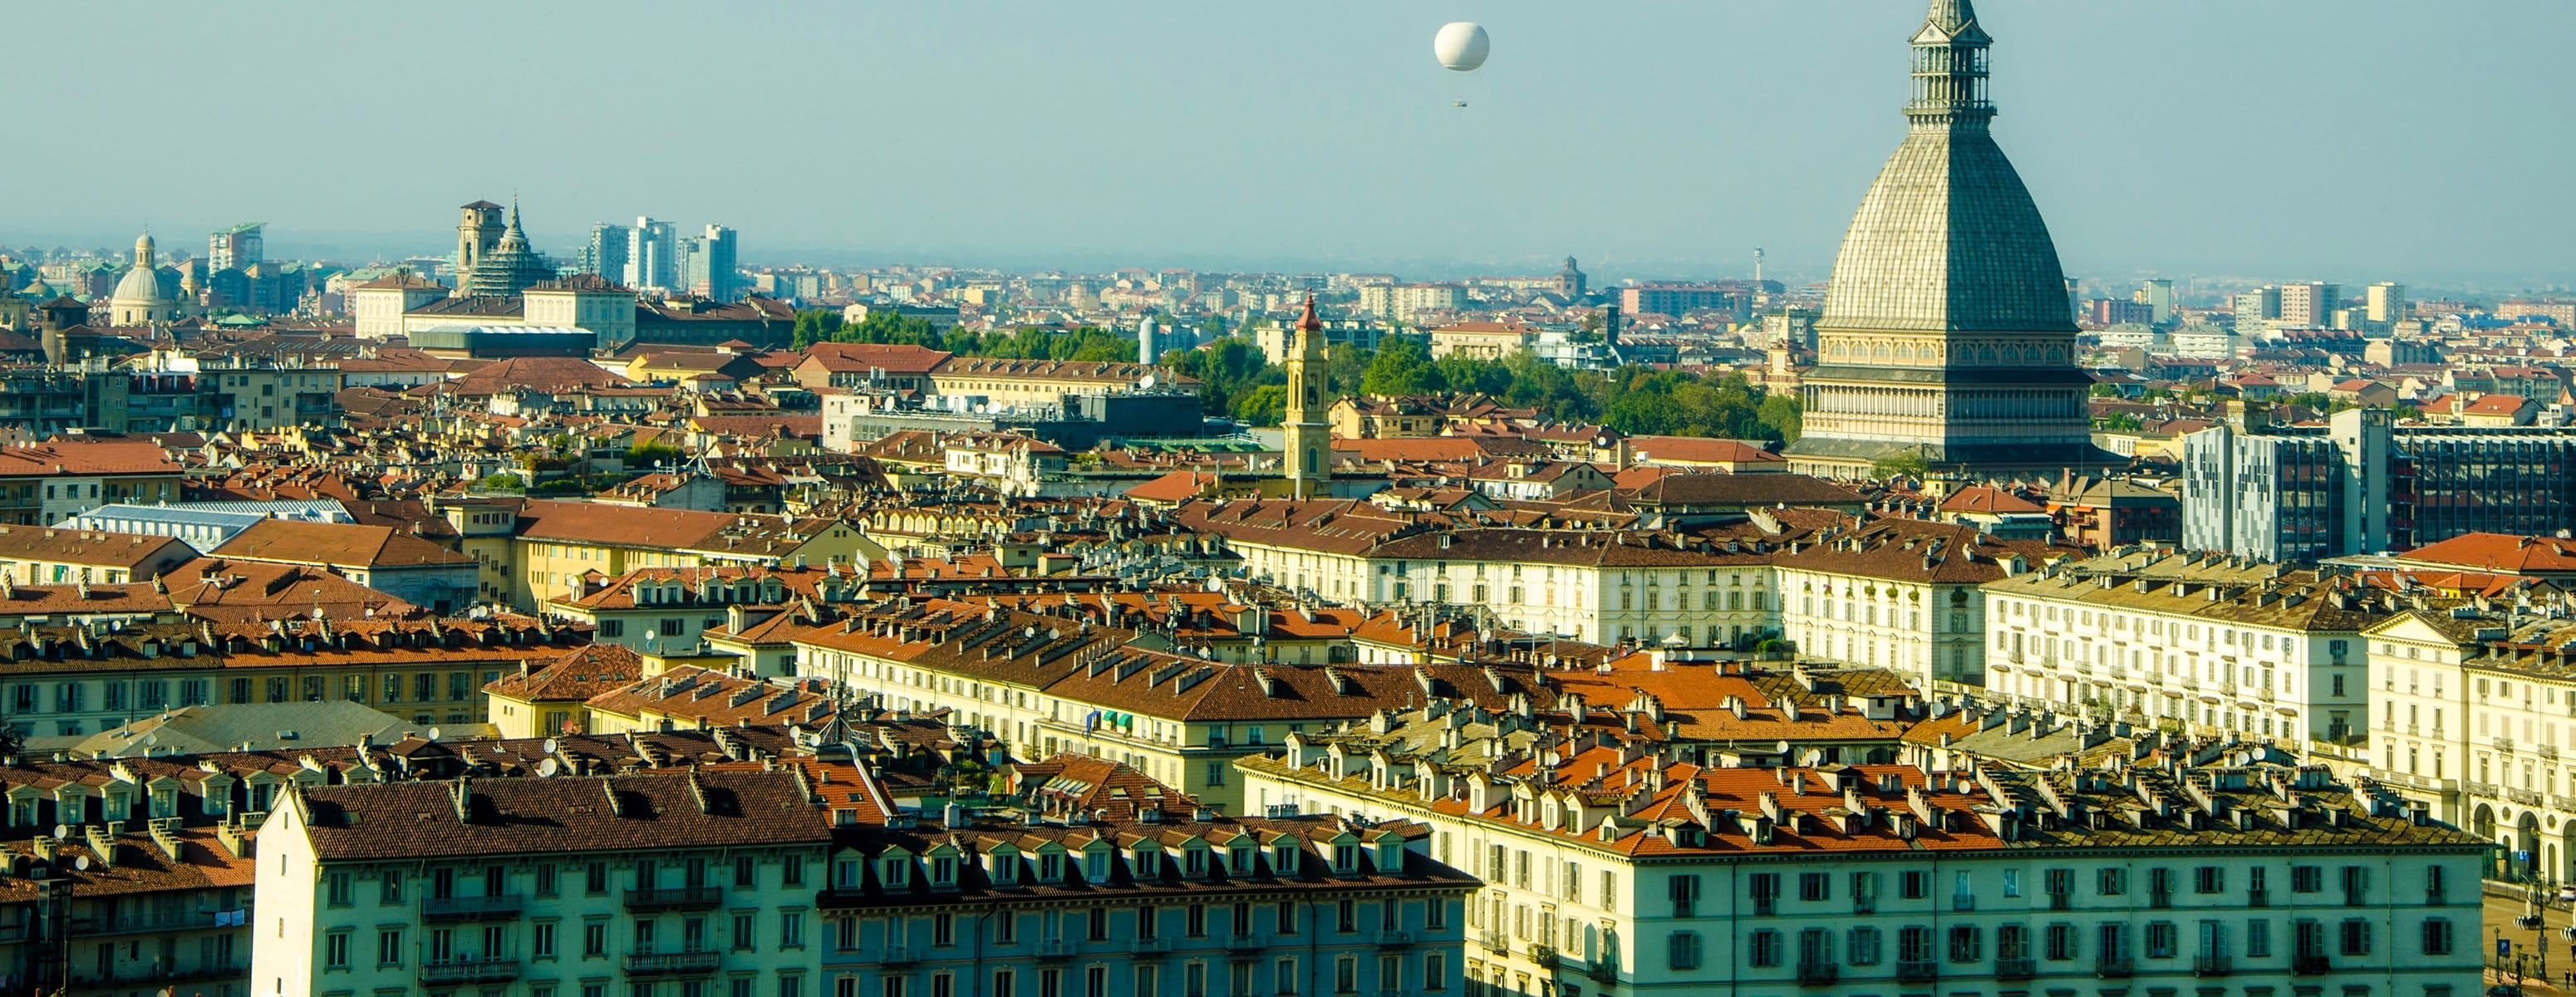 Turin 2018 (with Photos): Top 20 Places To Stay In Turin   Vacation  Rentals, Vacation Homes   Airbnb Turin, Piedmont, Italy